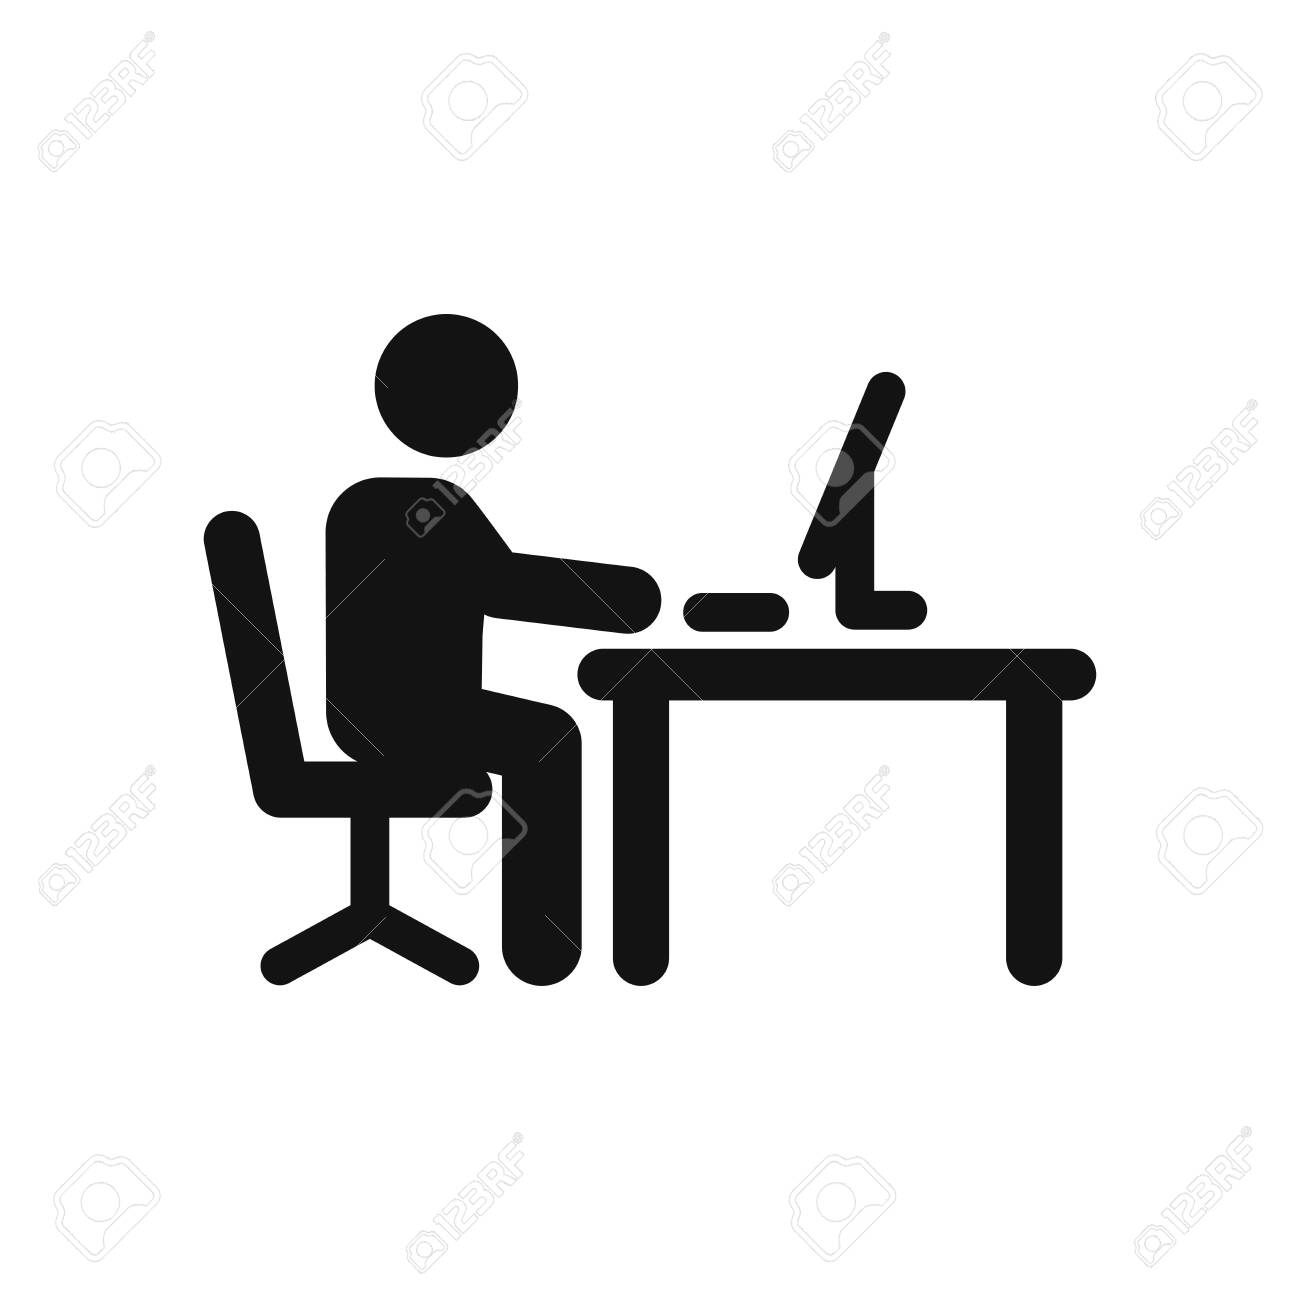 Office worker vector icon - 120748225